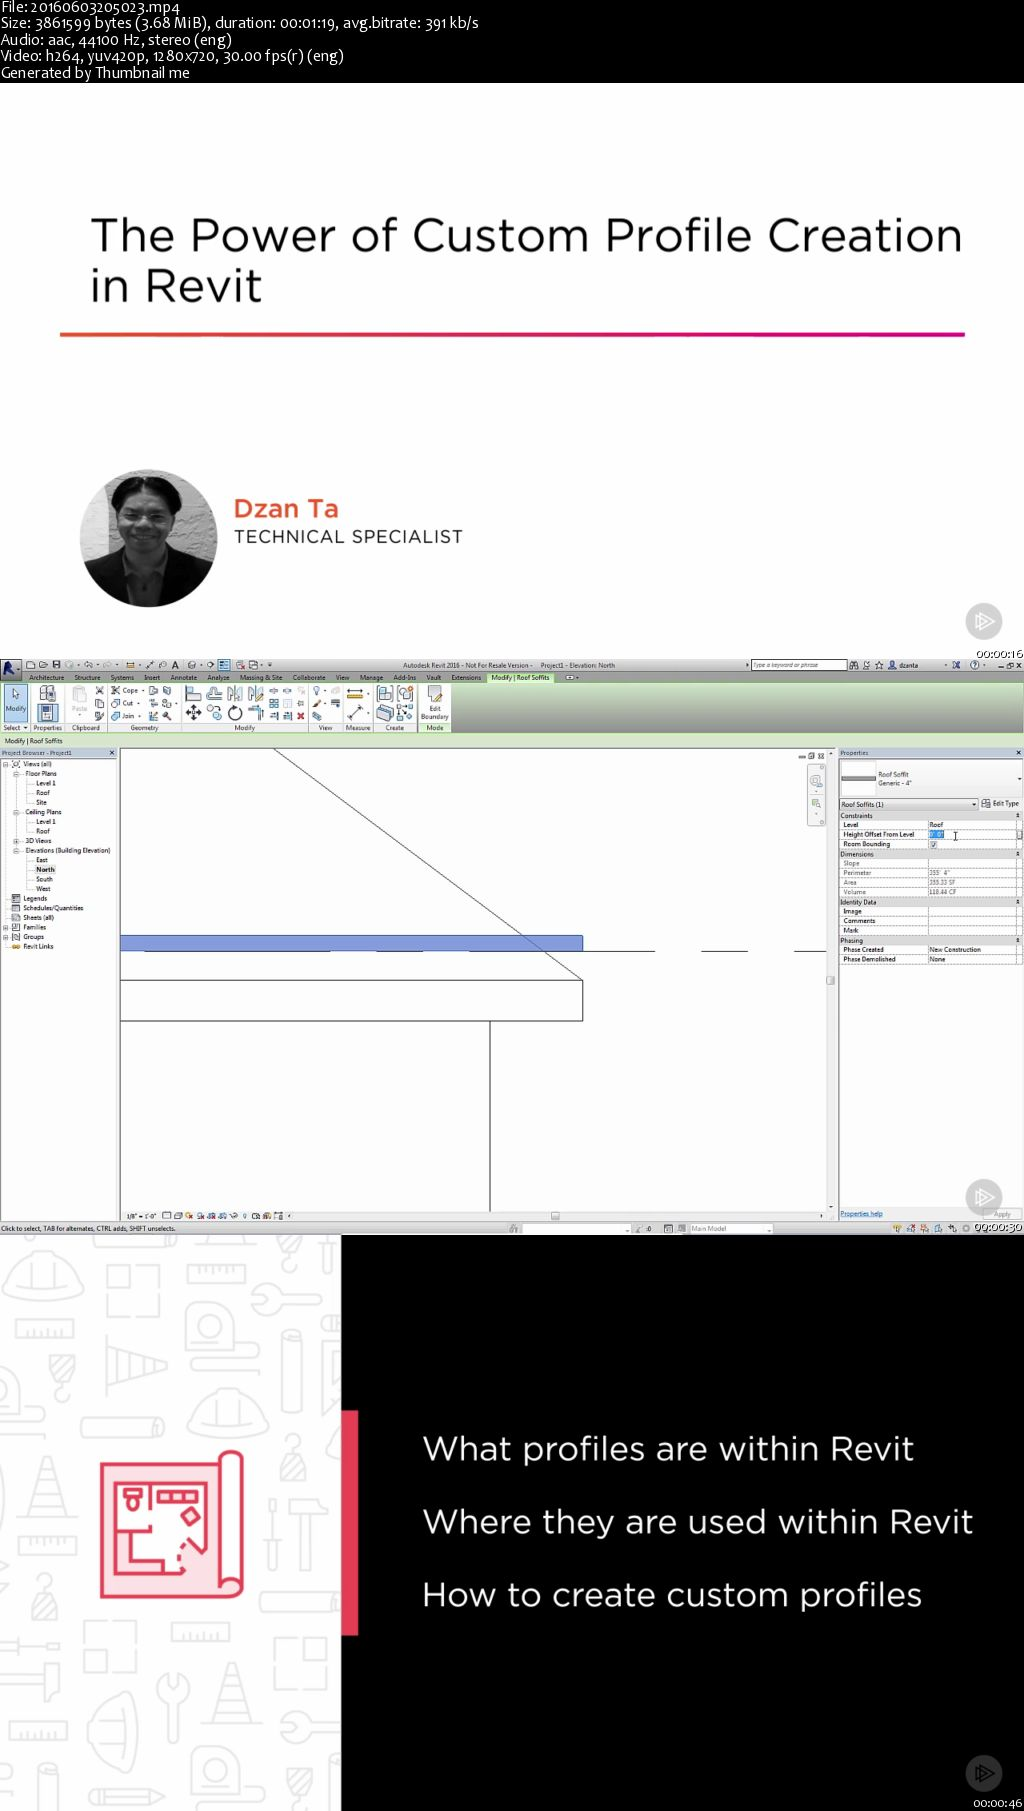 The Power of Custom Profile Creation in Revit